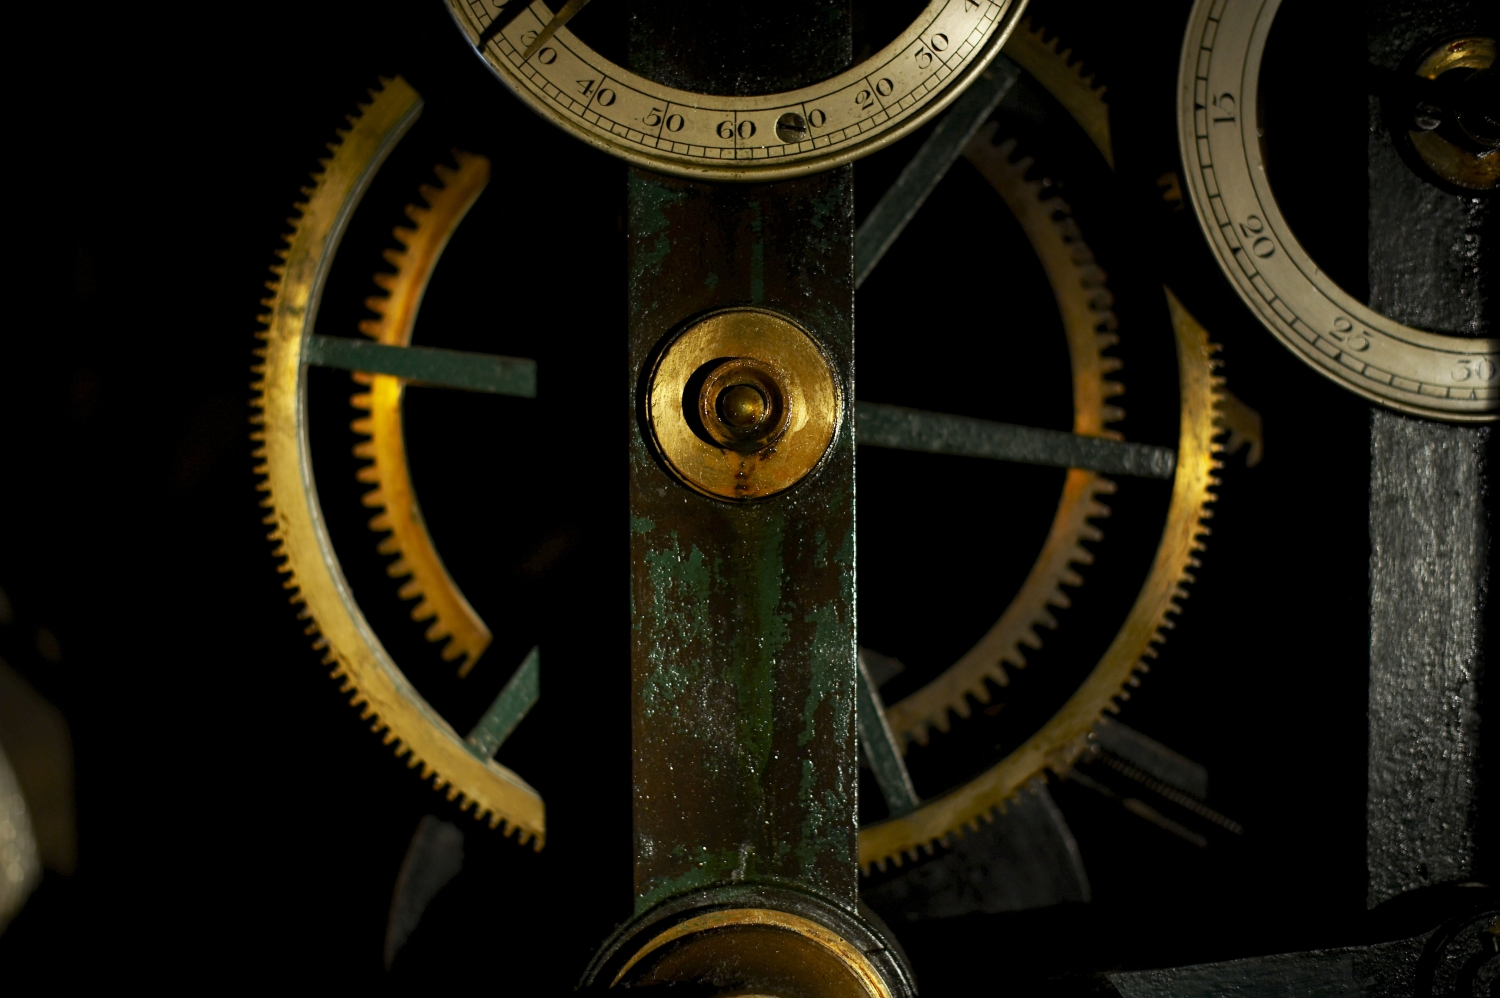 Closeup of the Barrack's clock movement cogs and gears with numerals partly visible.